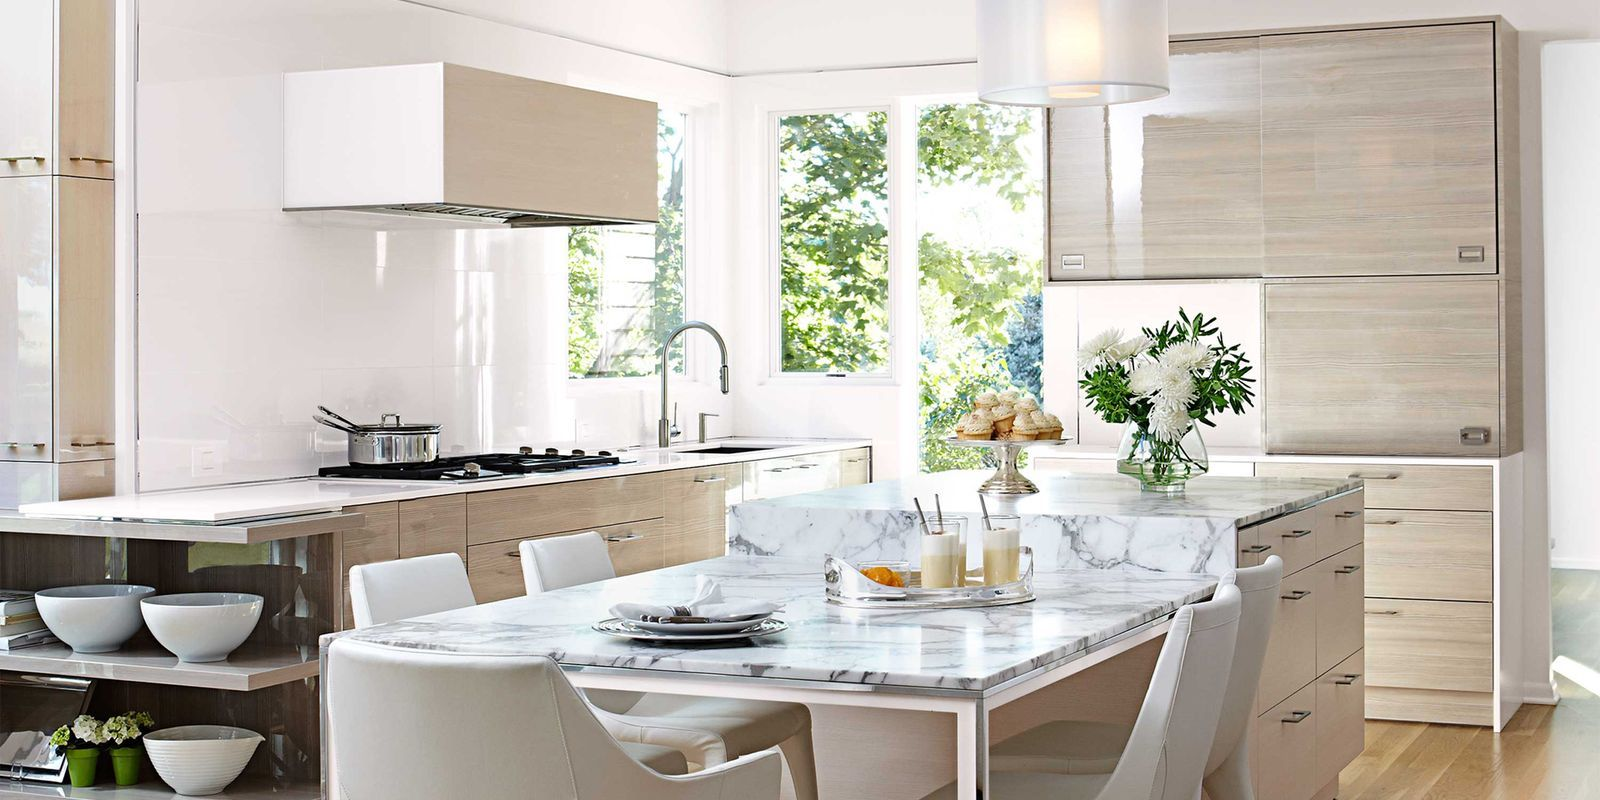 Tour an Airy and Bright Kitchen